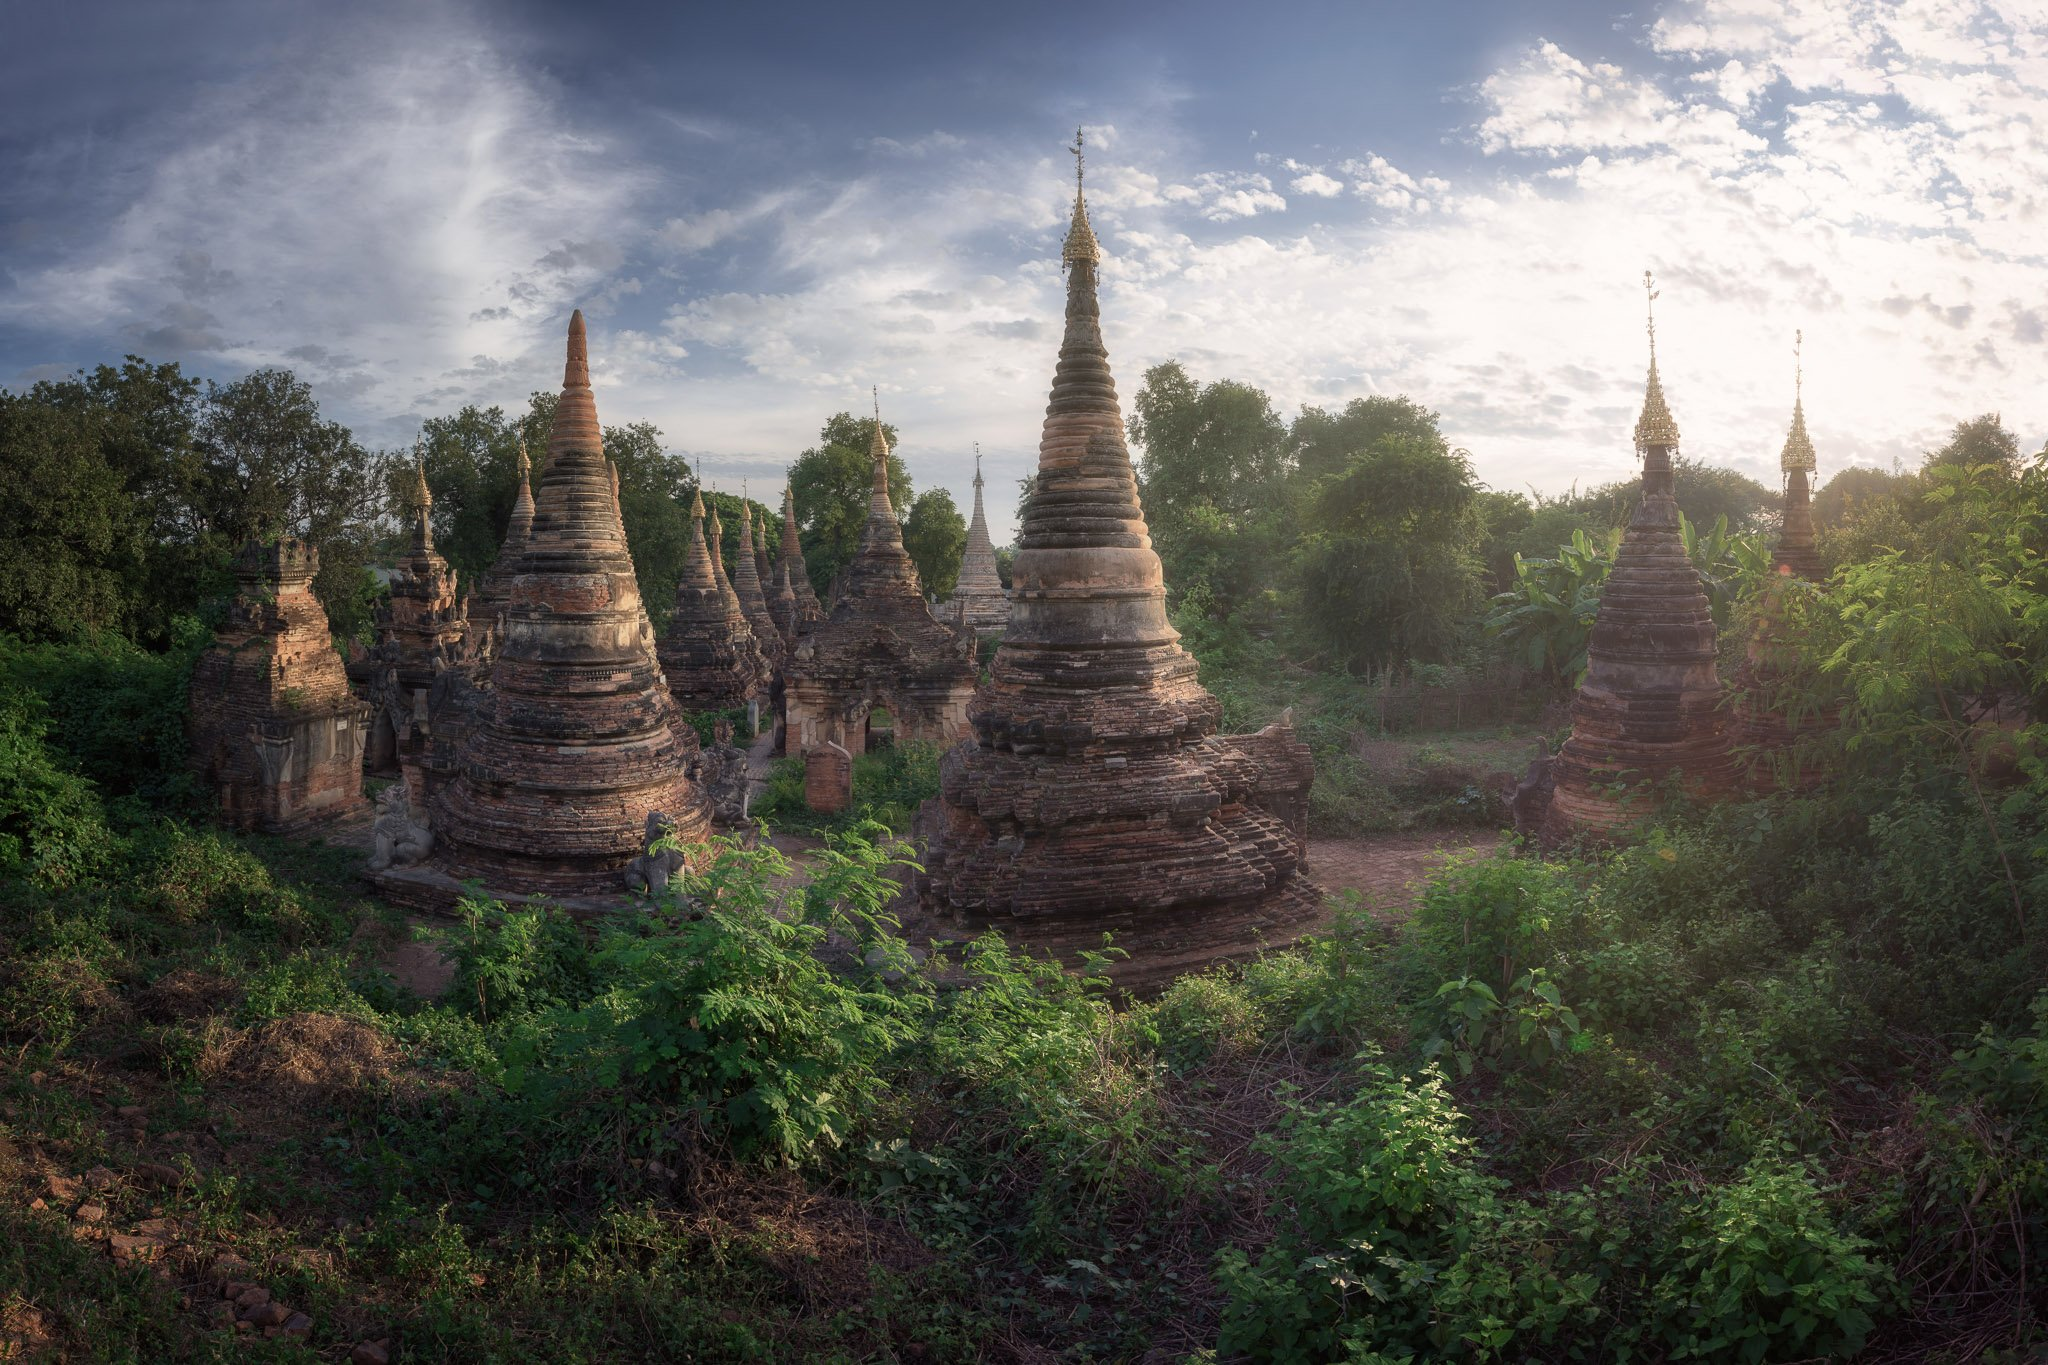 ancient, archeological, architecture, asia, asian, ava, brick, buddha, buddhism, building, burma, burmese, carving, city, column, complex, culture, evening, green, historic, history, house, inwa, jungle, landmark, landscape, mandalay, medieval, myanmar, o, Omelyanchuk Andrey